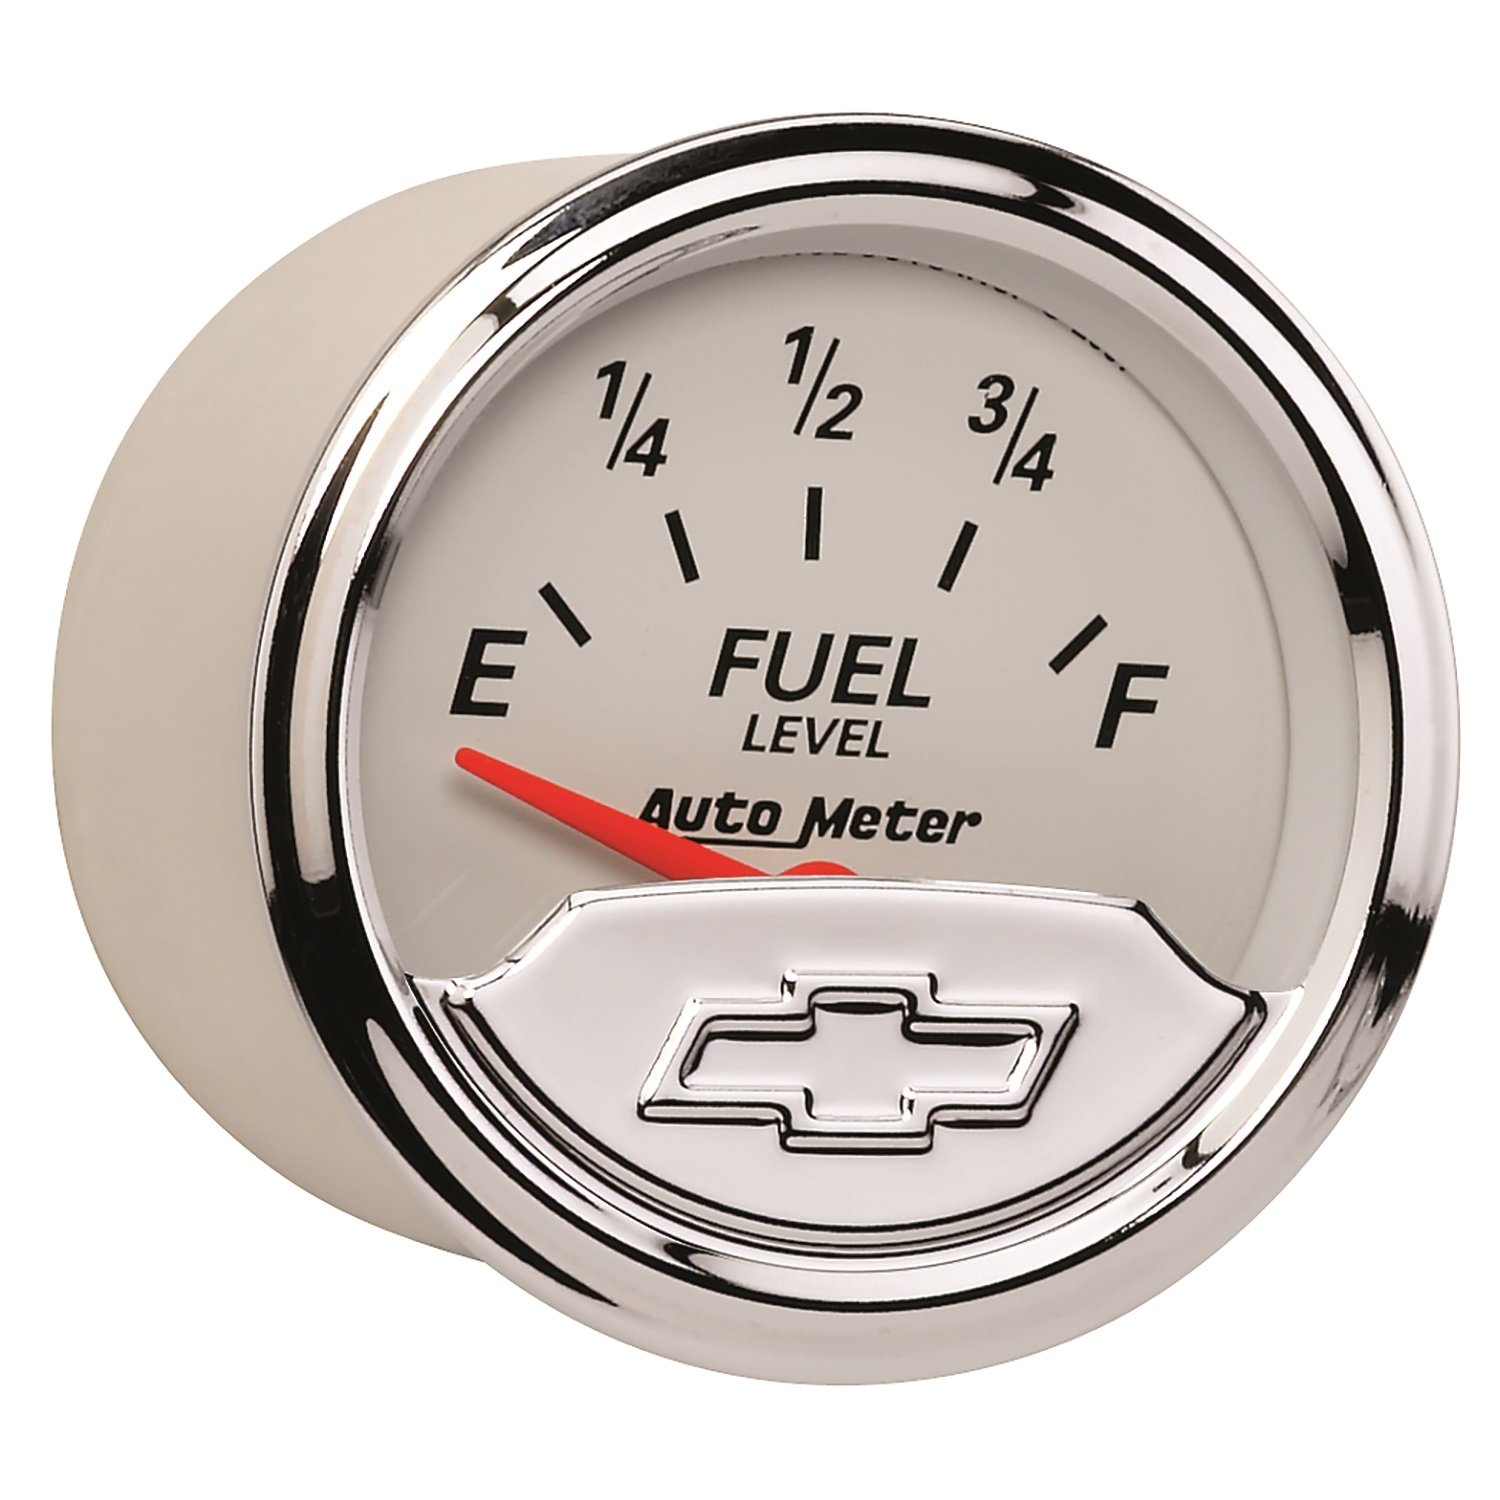 Auto Meter 1317-00408 Chevy Vintage 2-1//16 Electric Fuel Level Gauge Empty//Full, 52.4mm